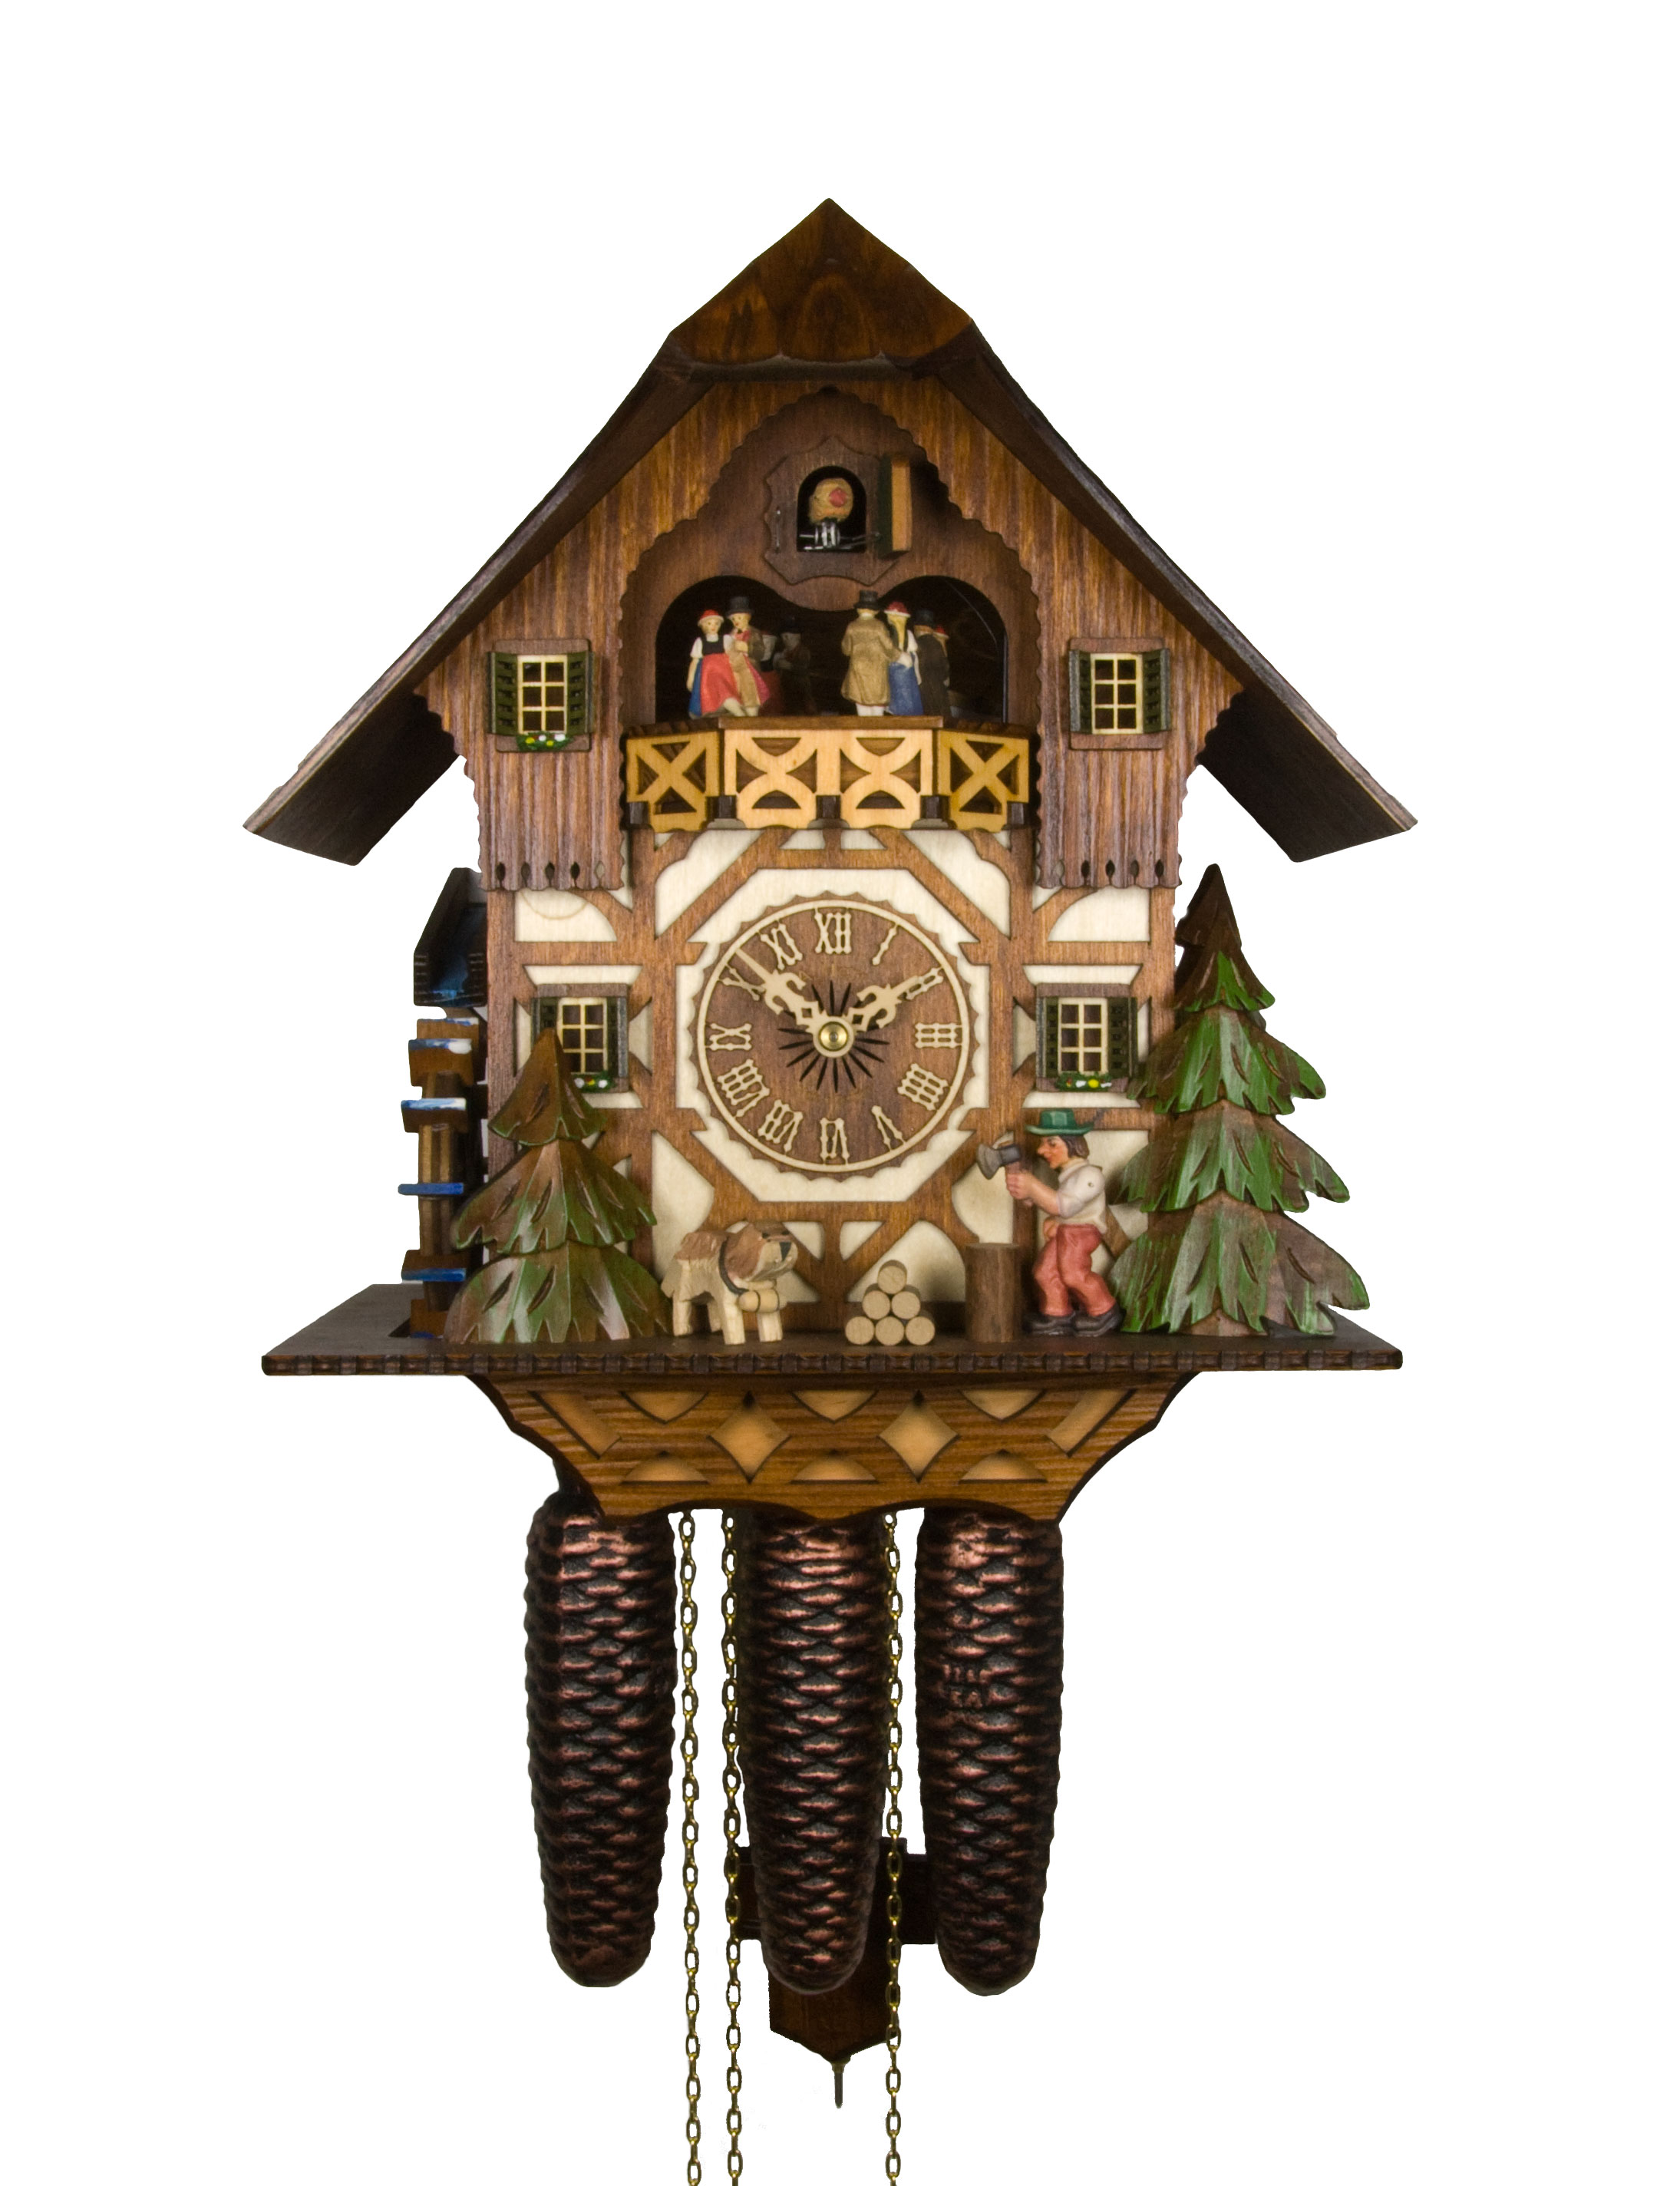 Adolf herr cuckoo clock the wood chopper ah 433 1 8tmt new ebay - Cuckoo clock pendulum ...